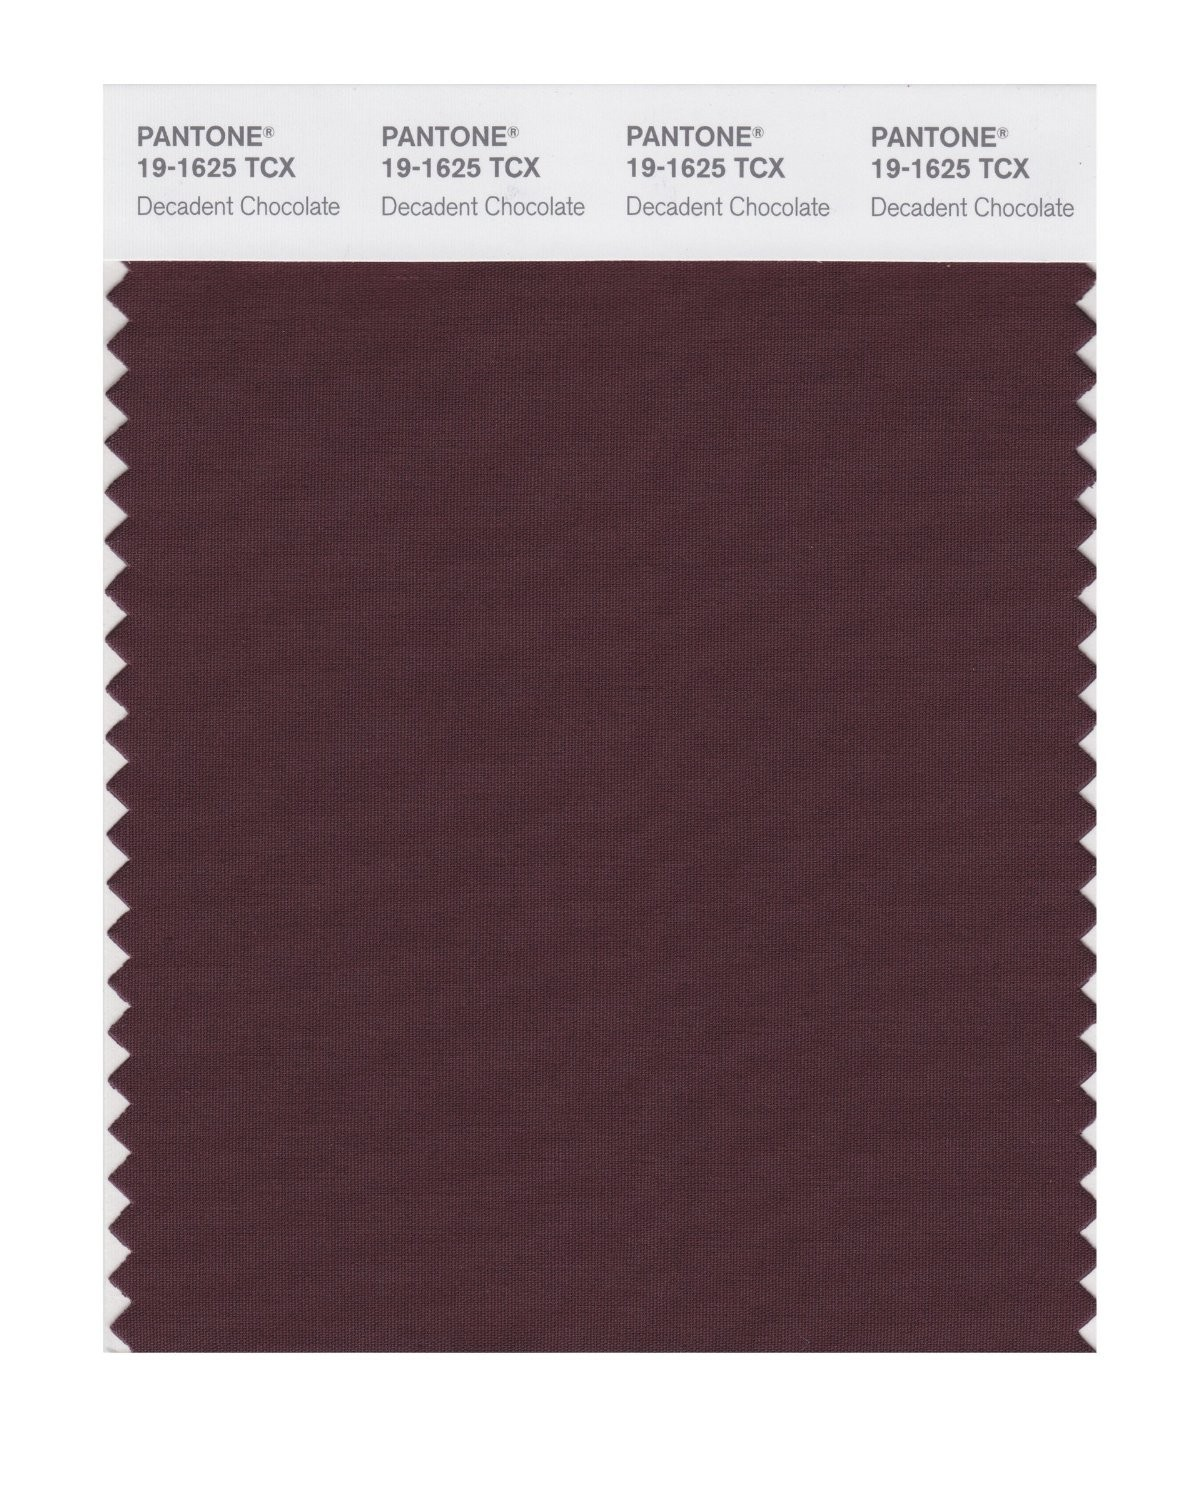 Pantone 19-1625 TCX Swatch Card Decadnt Chocolat